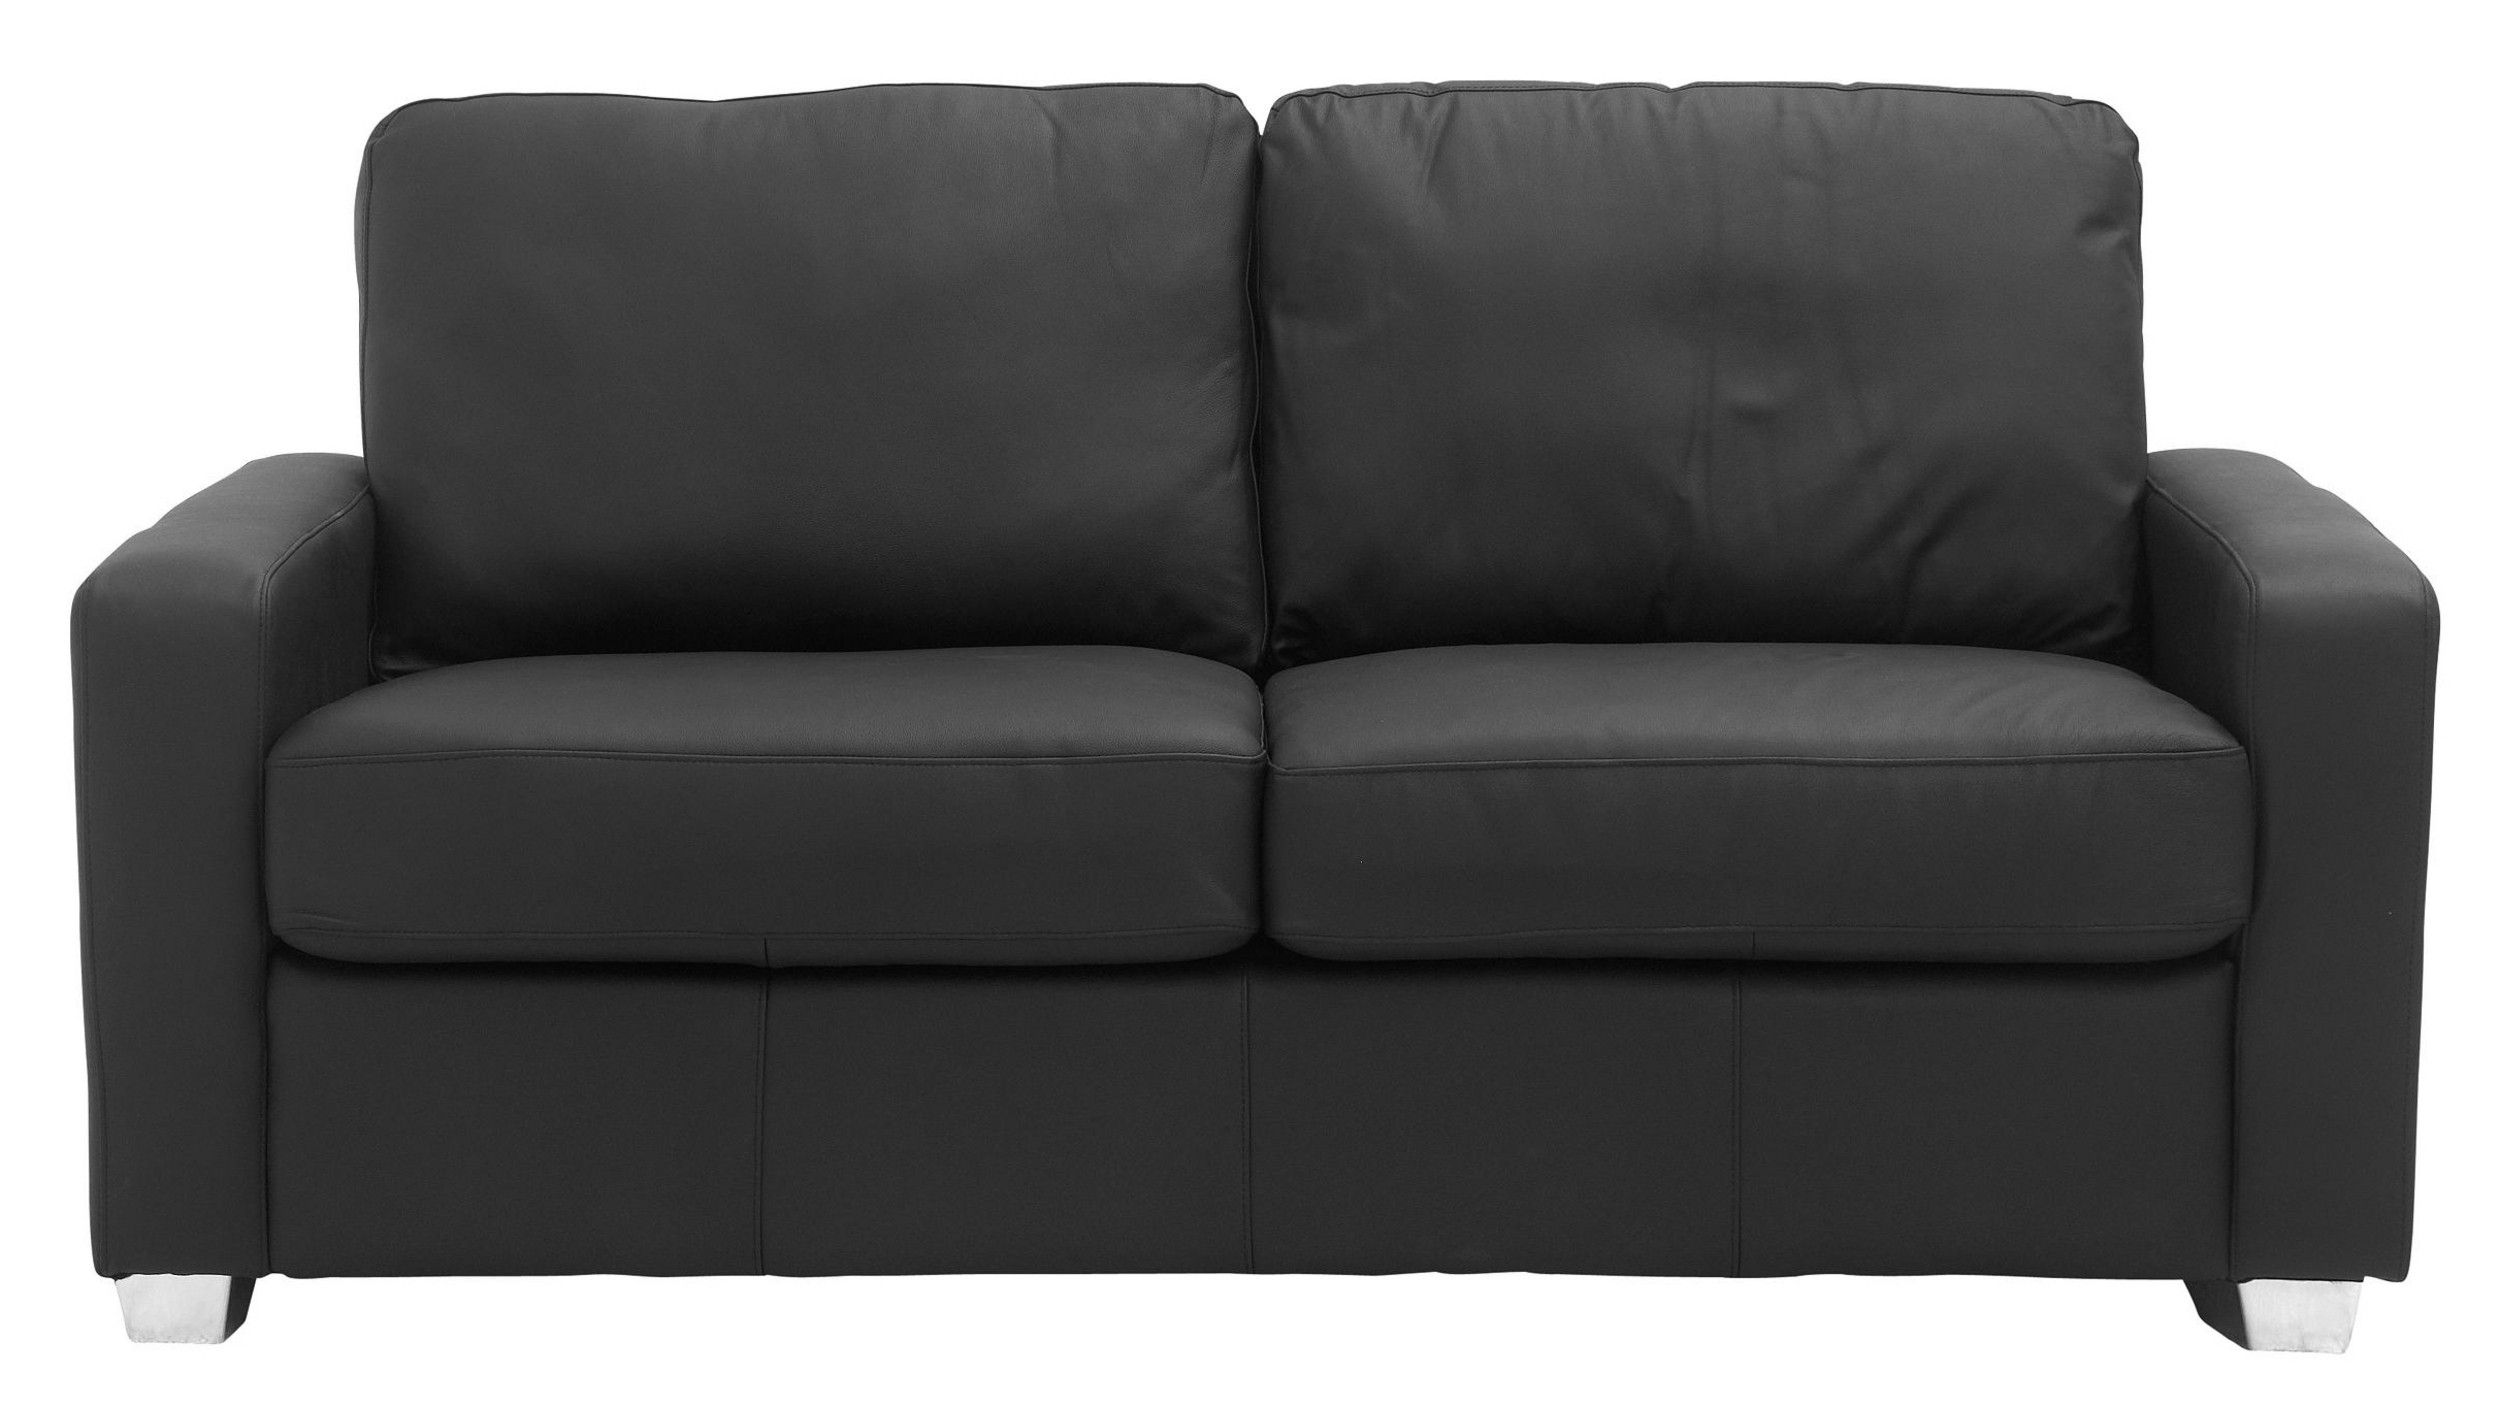 Caleb Leather Double Sofa Bed Double sofa bed, Sofa bed